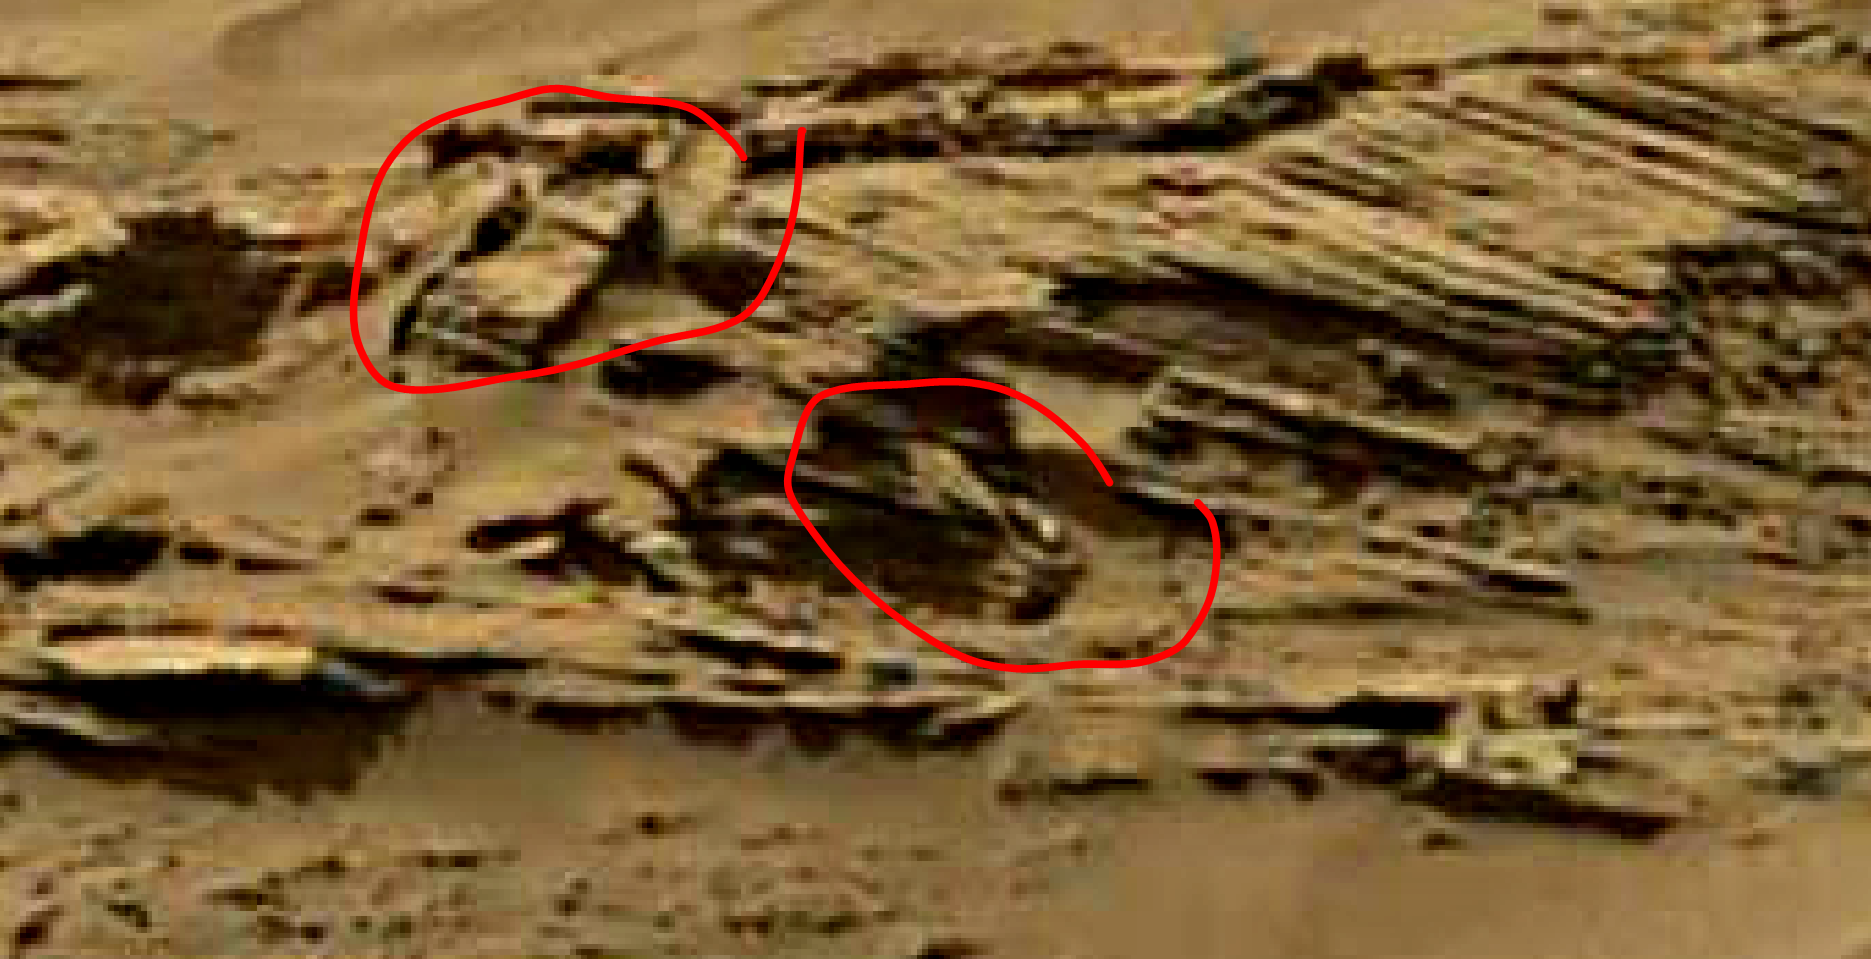 mars sol 1344 anomaly-artifacts 9a was life on mars